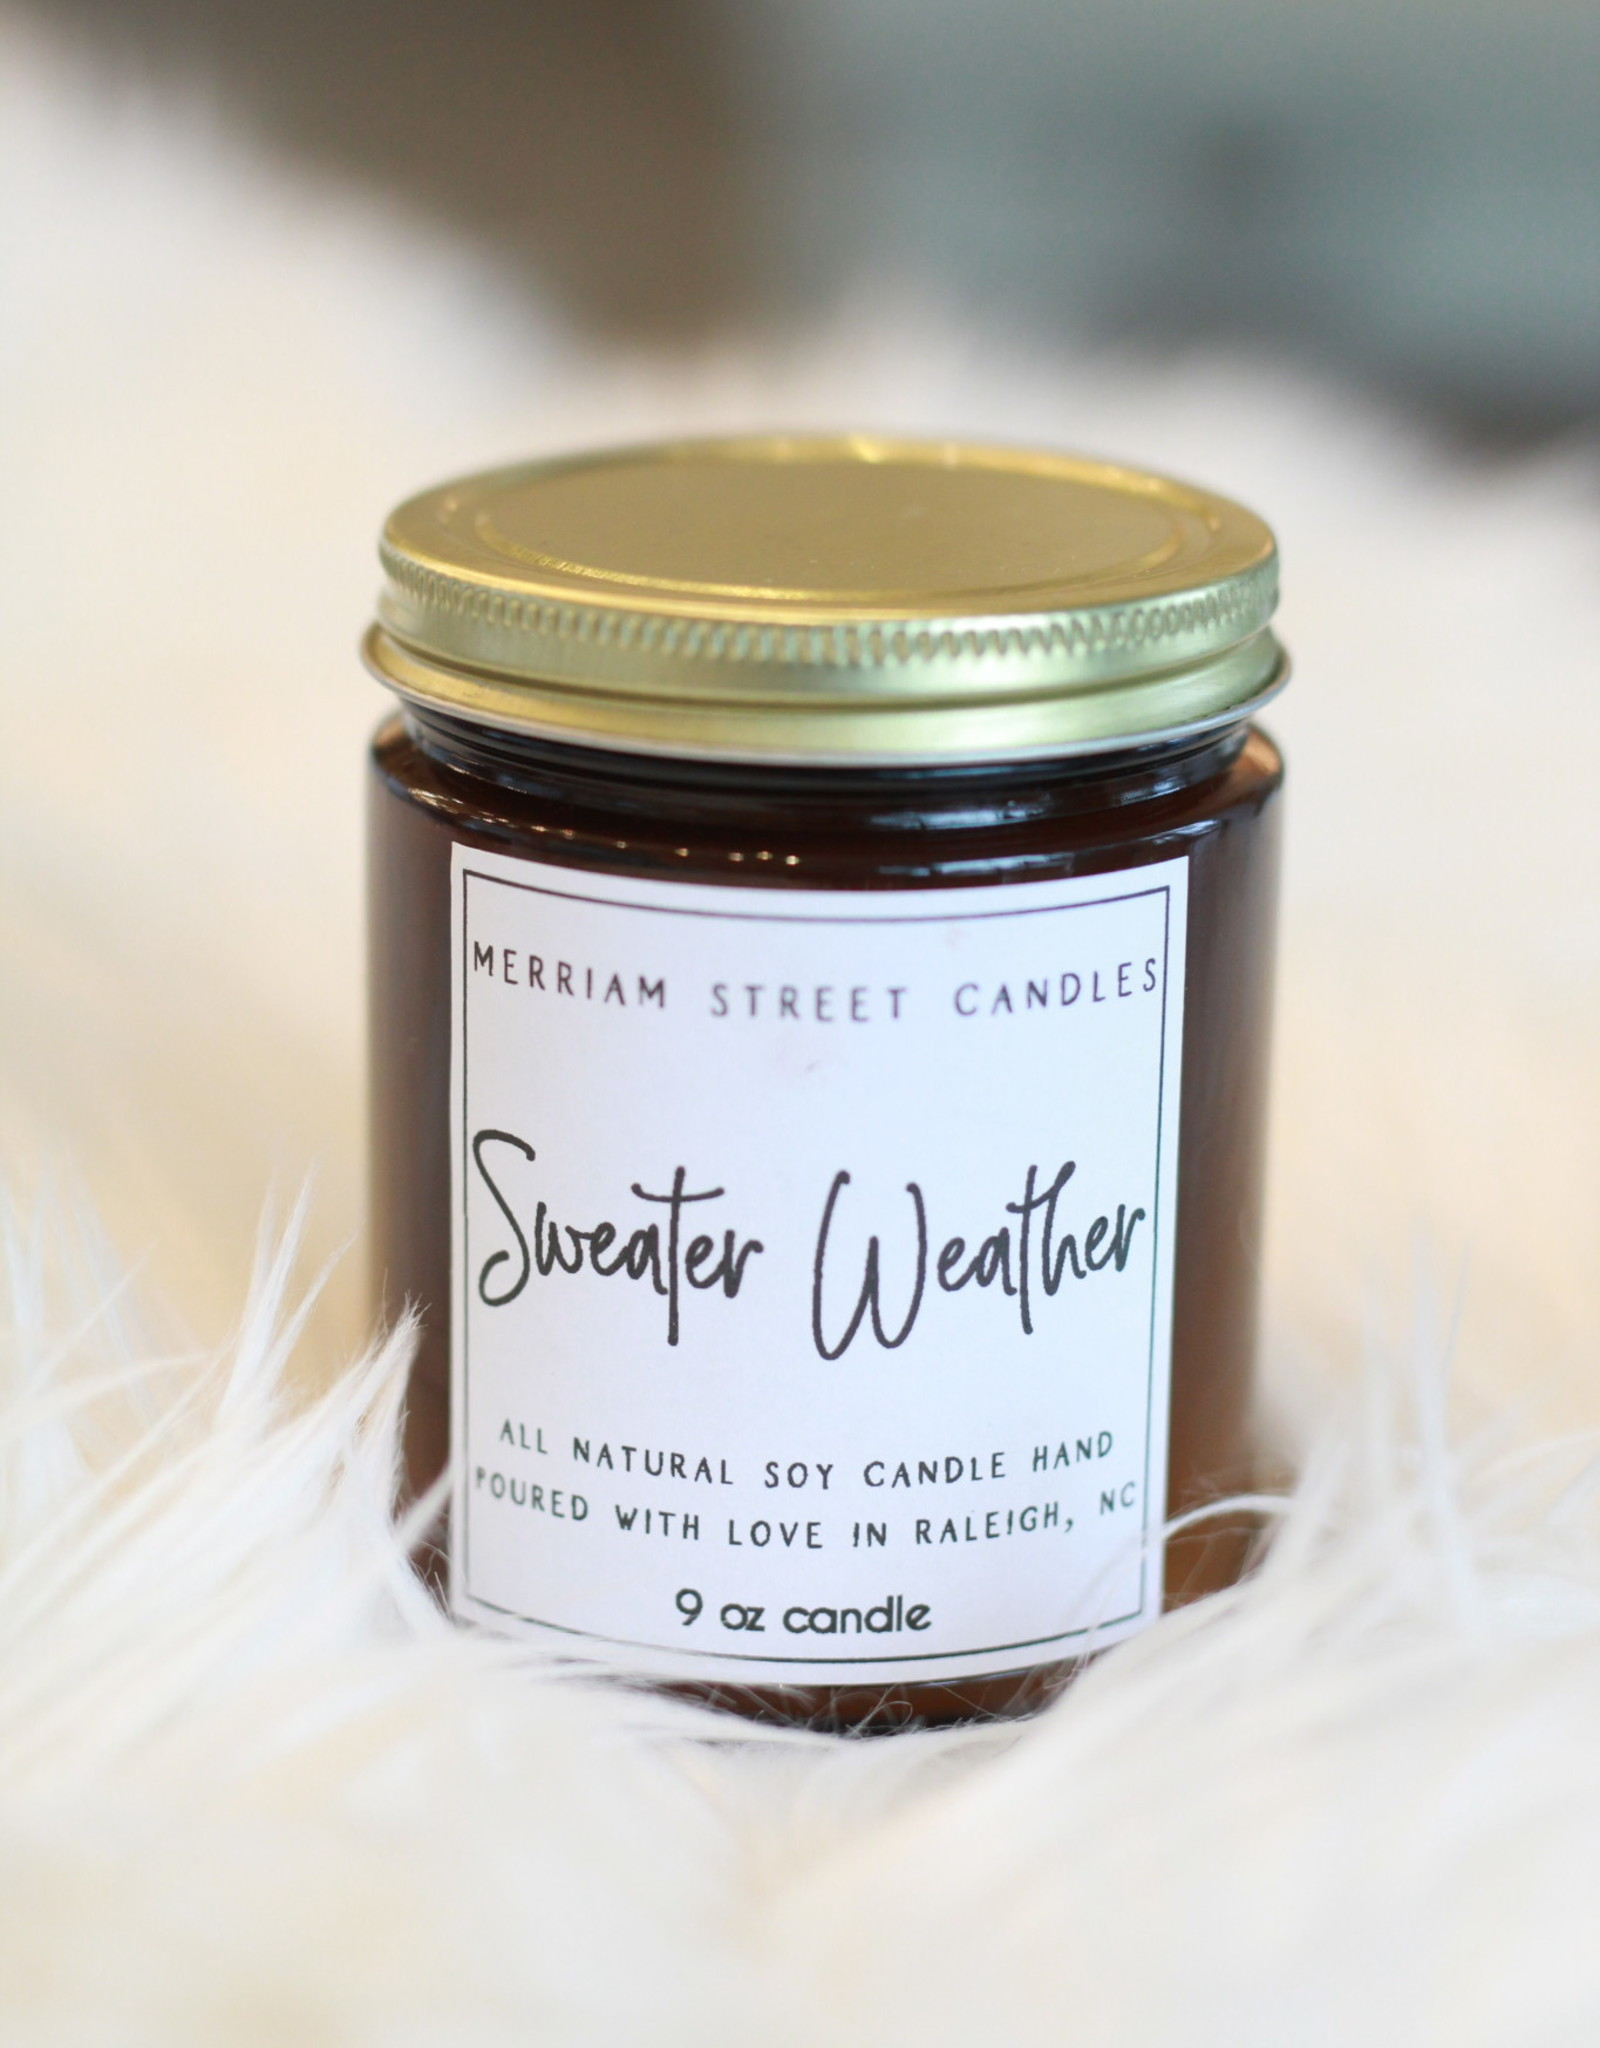 Merriam Street Candles Merriam Street Candles